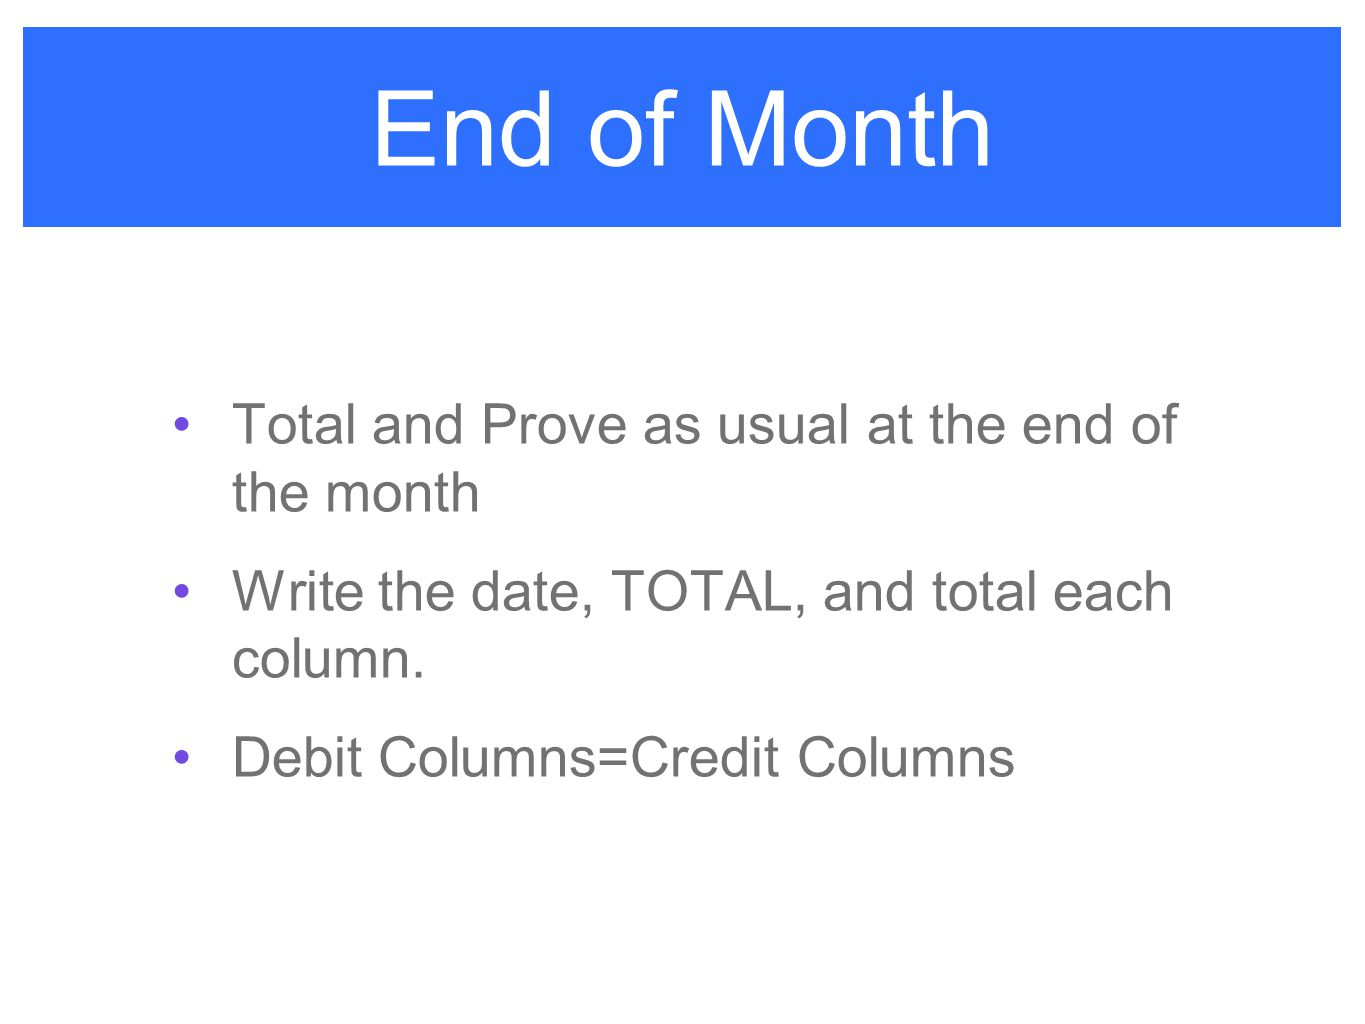 End of Month Total and Prove as usual at the end of the month